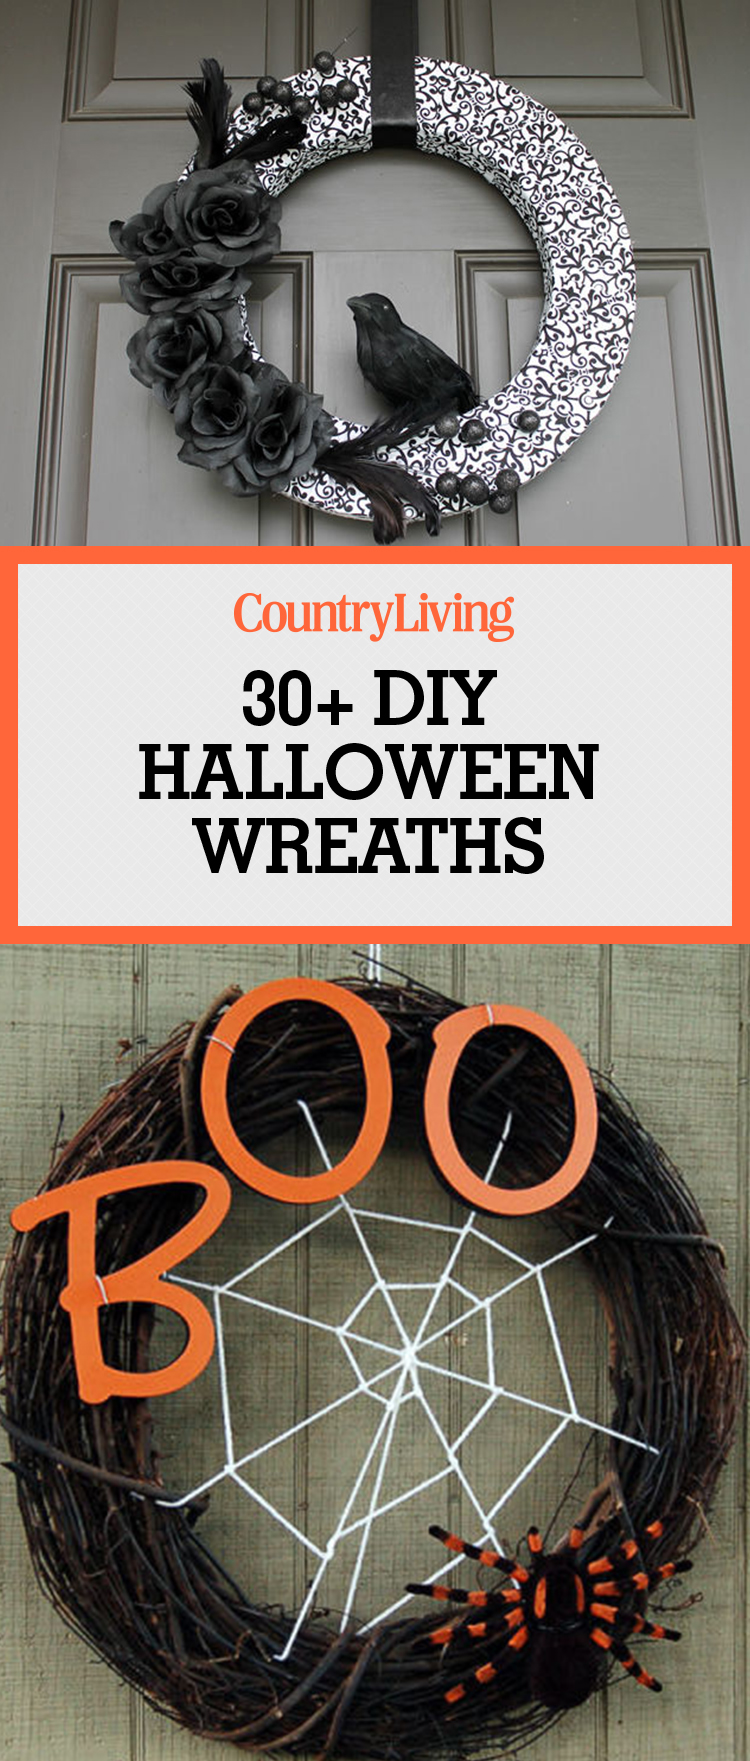 30 diy halloween wreaths how to make halloween door decorations ideas. Black Bedroom Furniture Sets. Home Design Ideas